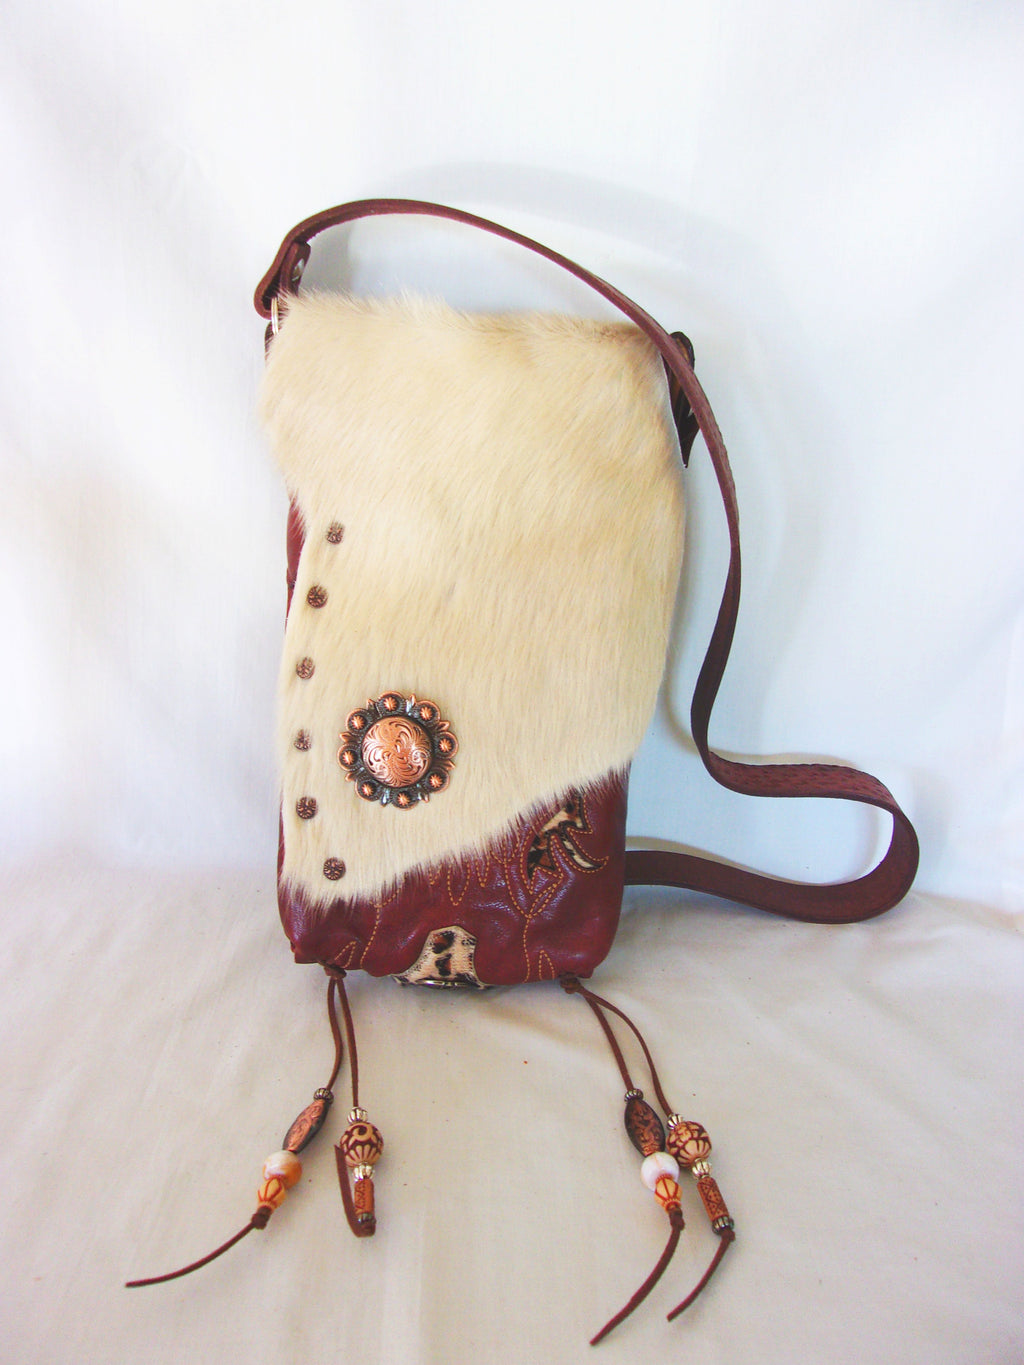 Hair on Hide Bag - Cowboy Boot Purse - Cowhide Purse - Handcrafted Crossbody Purse HH28